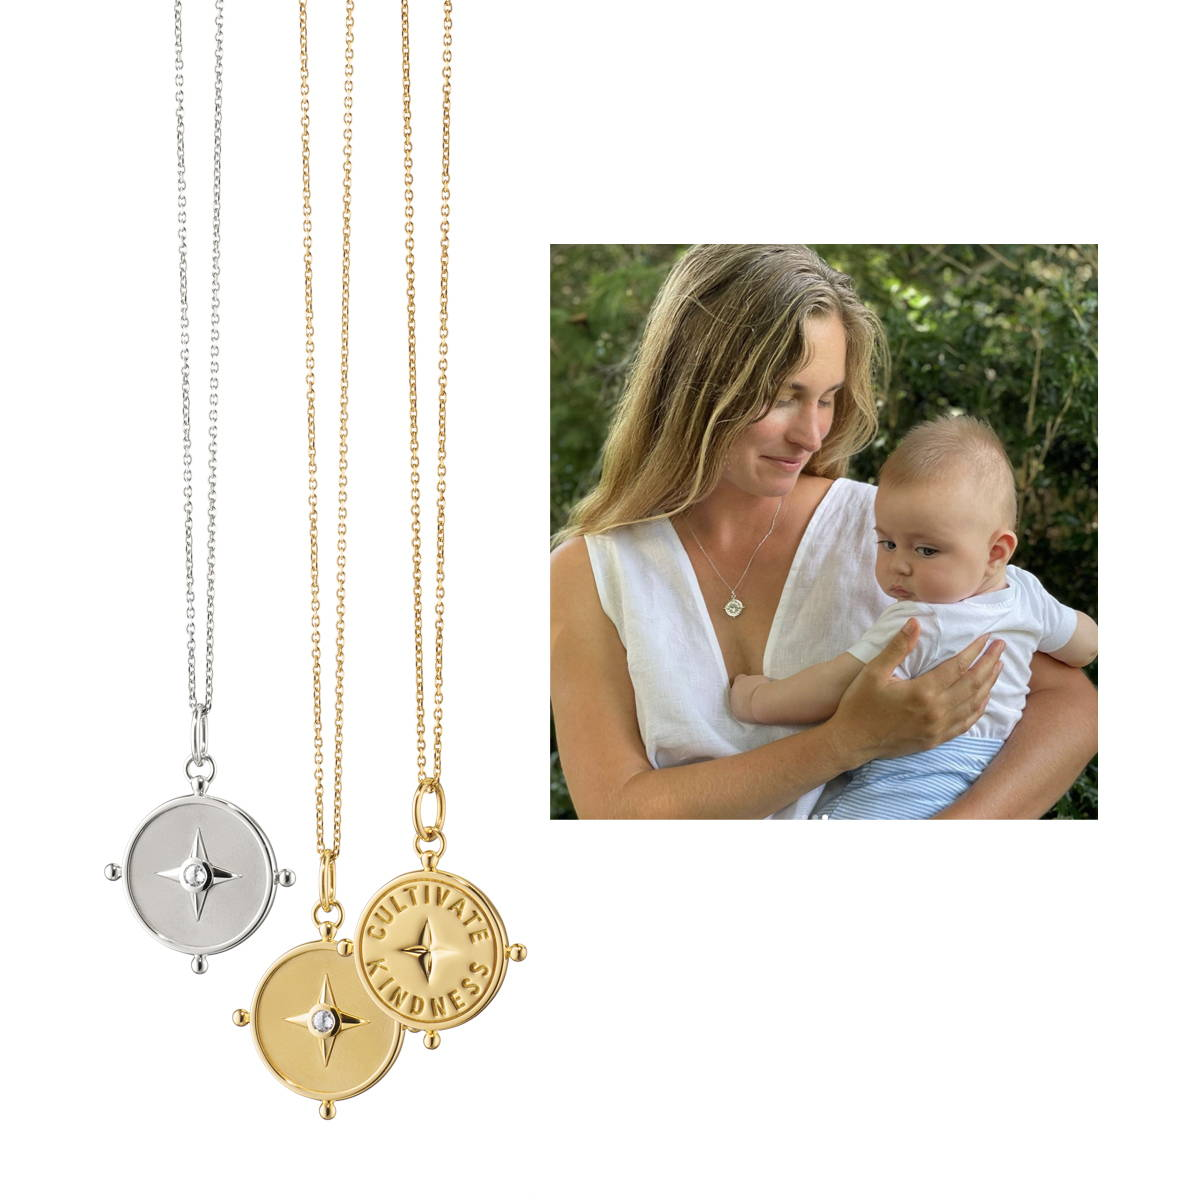 Cultivate kindness charm necklace